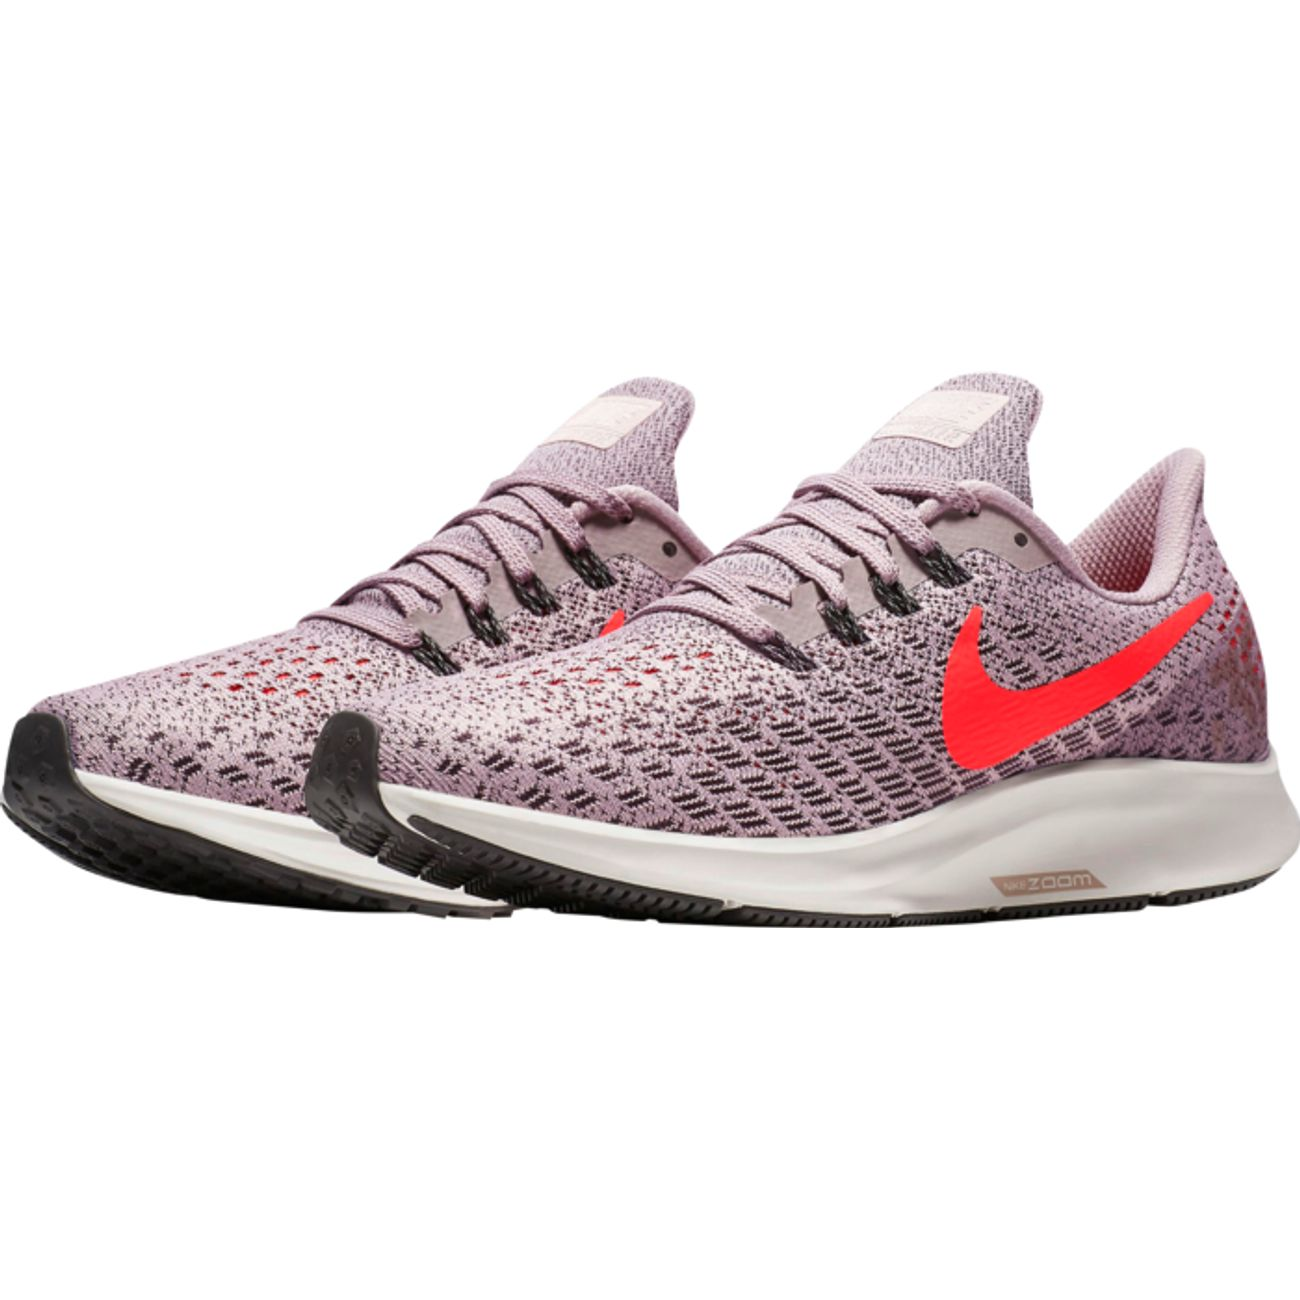 new product 393ee b4877 ... CHAUSSURES BASSES running femme NIKE AIR ZOOM PEGASUS 35